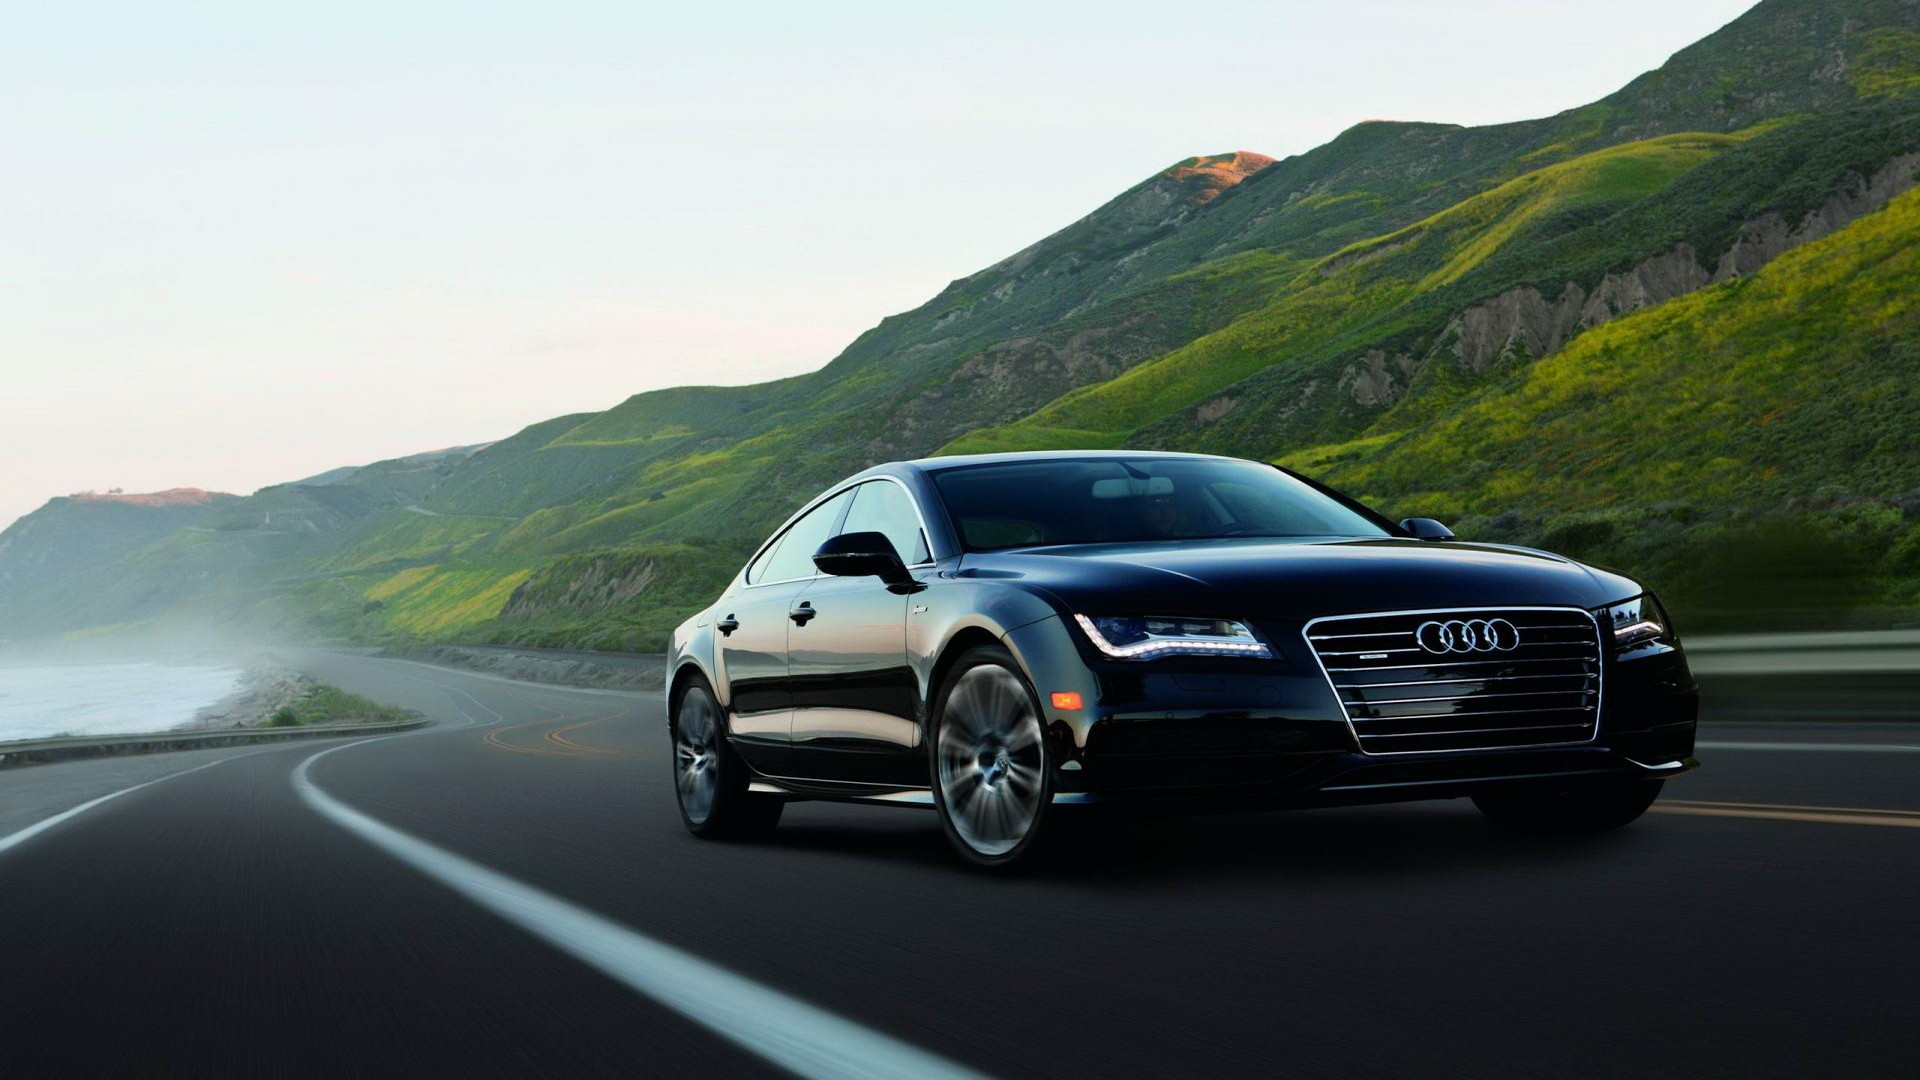 S4 Wallpaper Hd Audi Wallpaper 1920x1080 73 Images